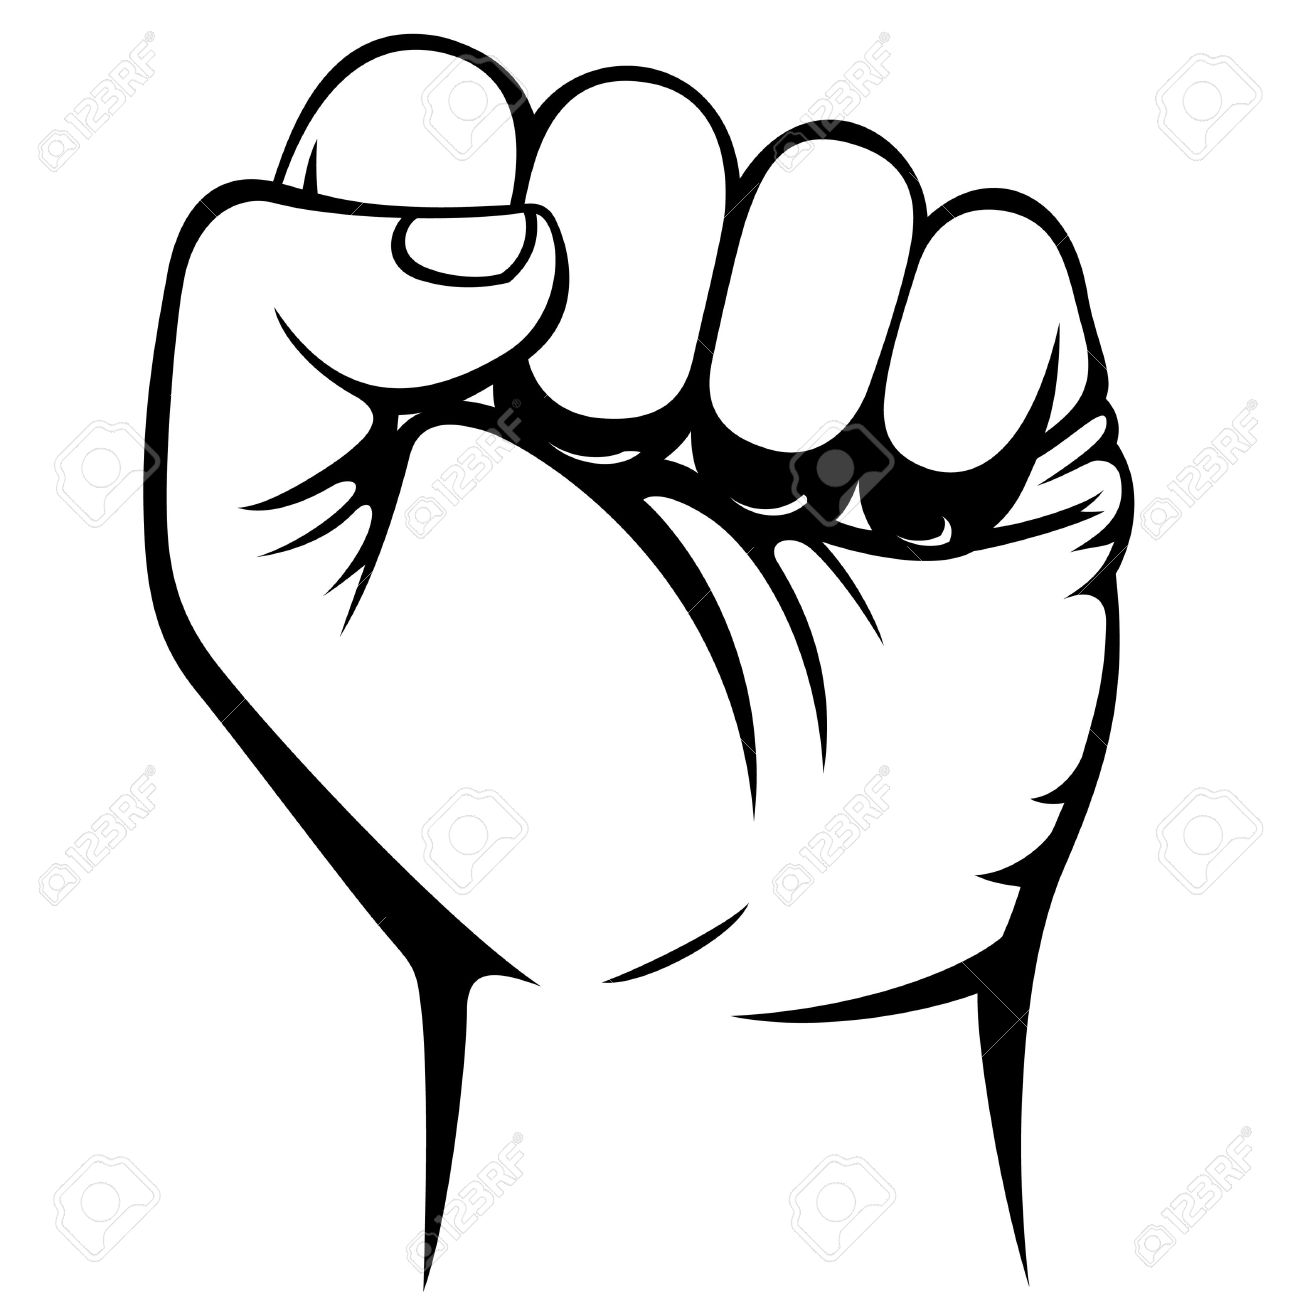 Clenched fist clipart free.